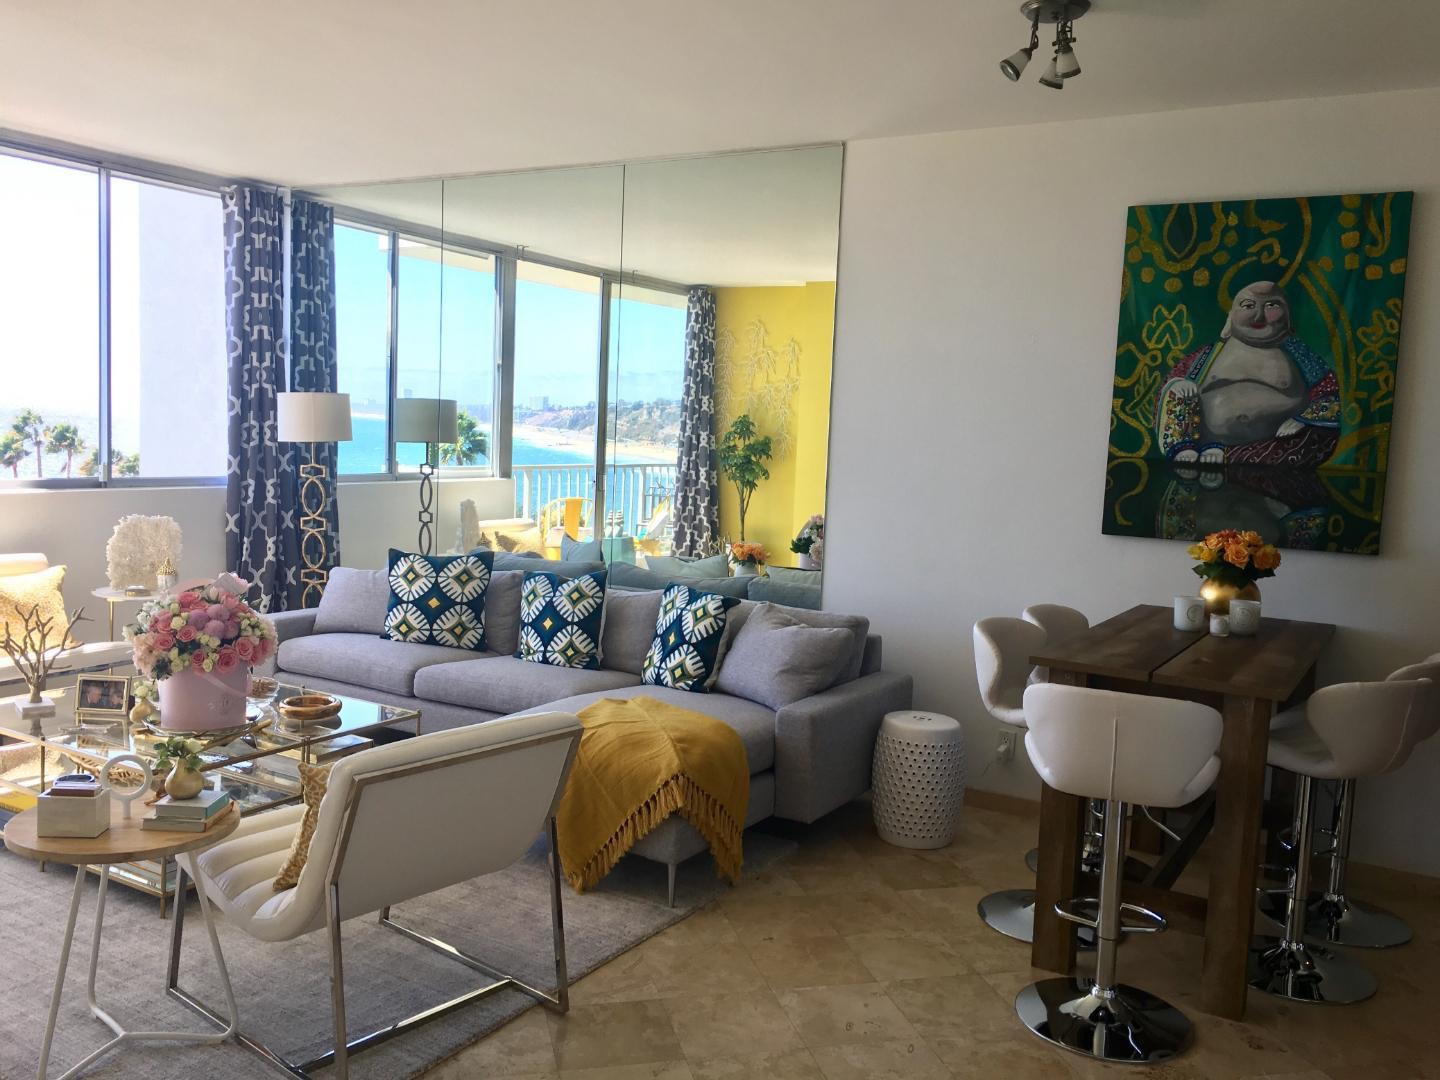 005.3 Furnished 17350 West Sunset Boulevard For Sale Lease The Malibu Life Team Luxury Real Estate.JPG